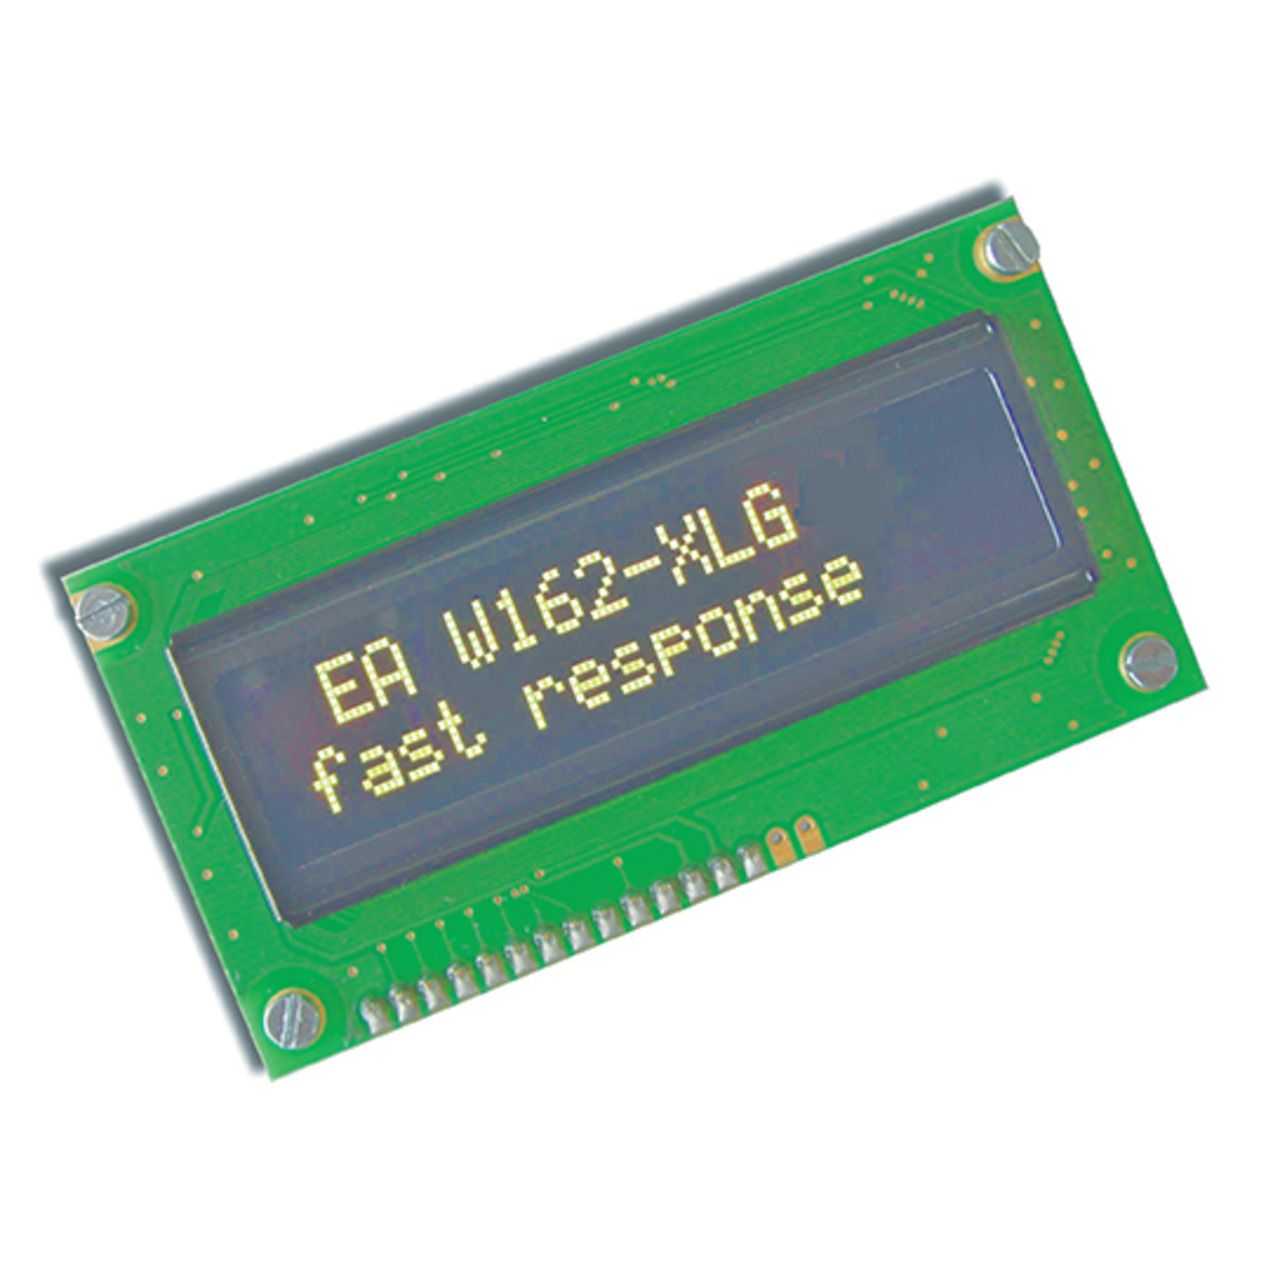 Electronic Assembly OLED-Display EAW162-XLG 2x16- character 5-5 mm- gelb